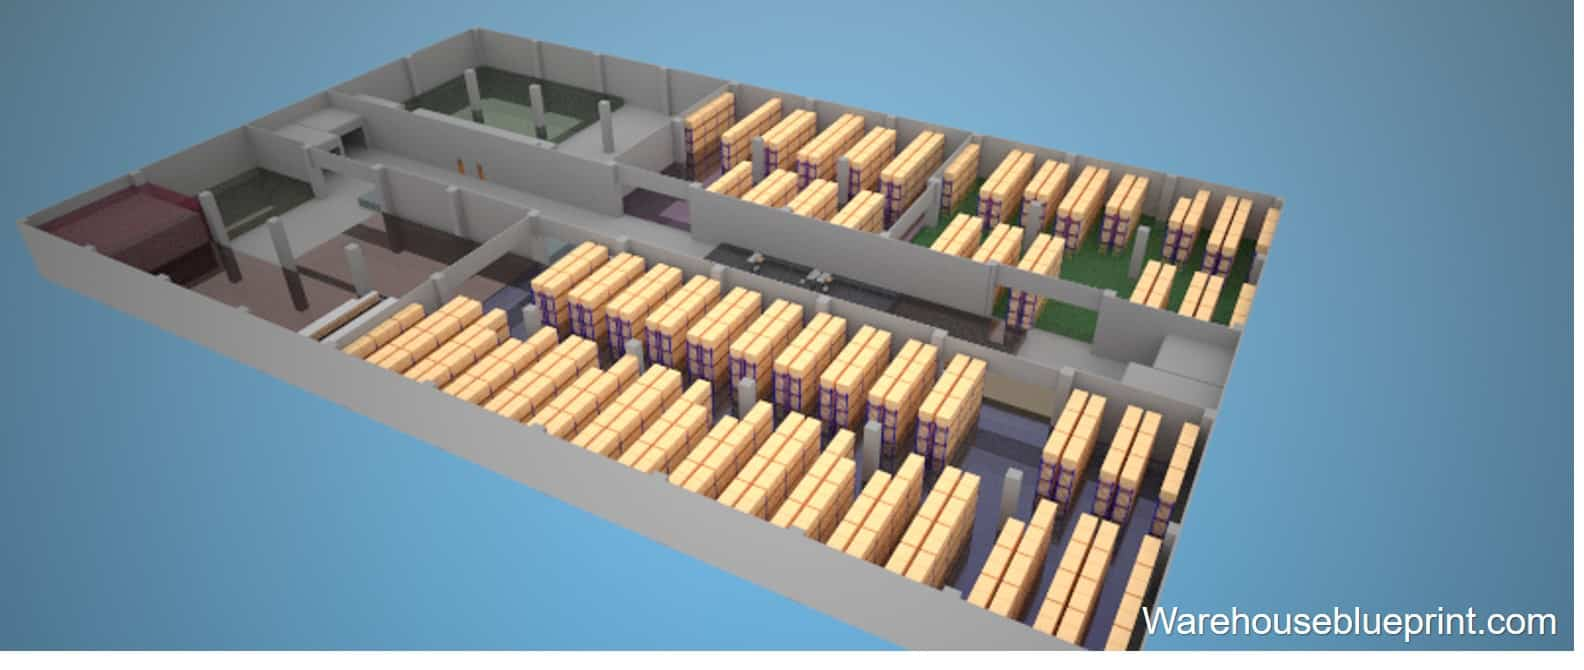 Warehouse Layout 7 - rendered